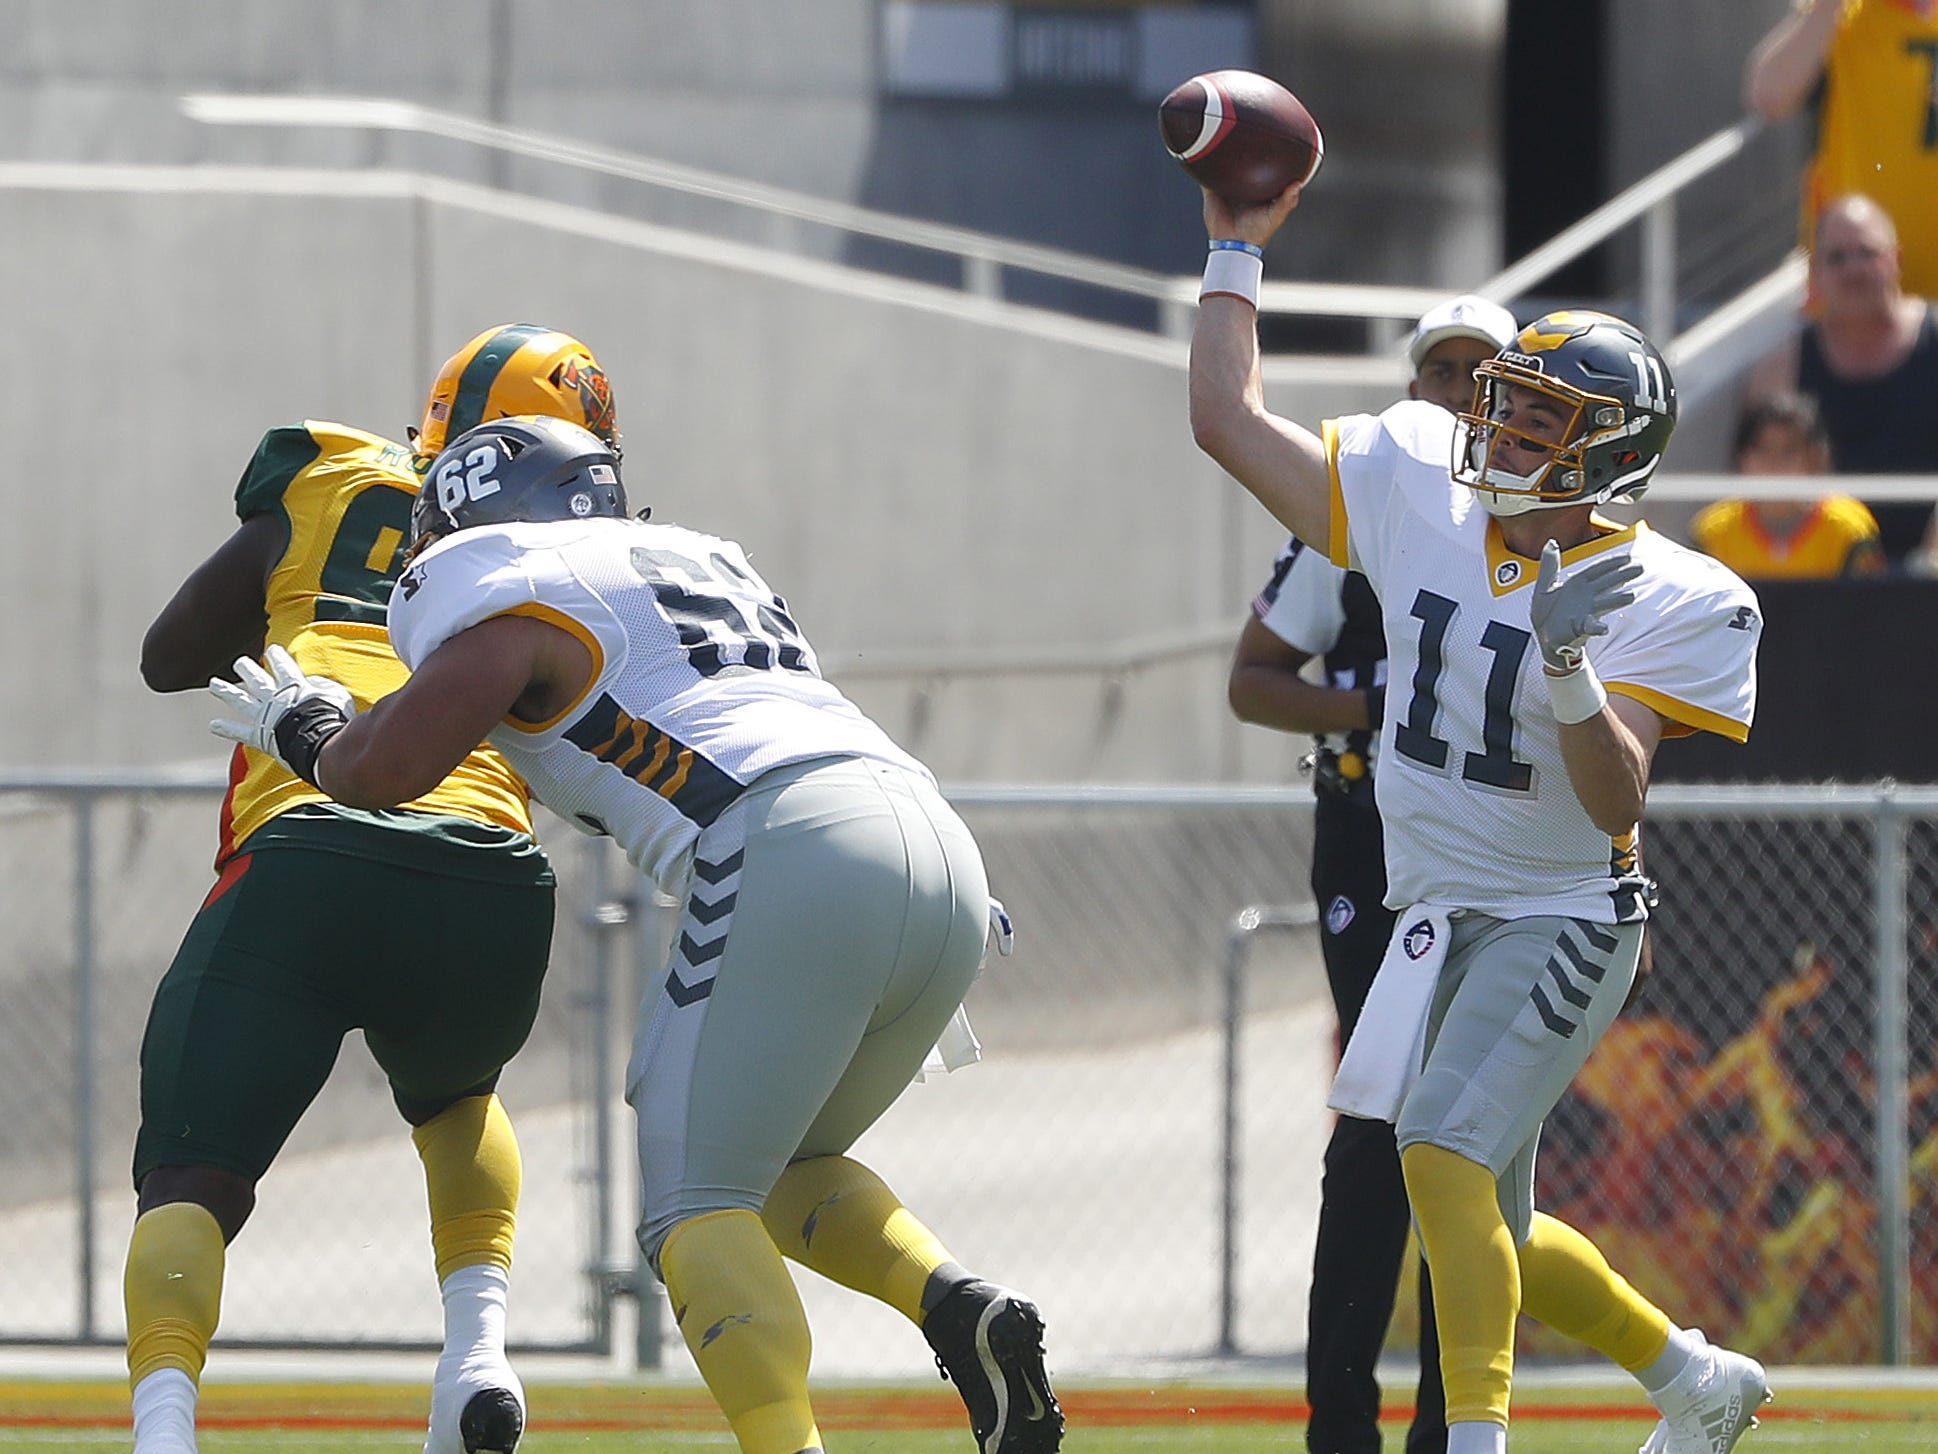 Fleet's Mike Bercovici (11) throws a pass against the Hotshots during the first half at Sun Devil Stadium in Tempe, Ariz. on March 24, 2019.